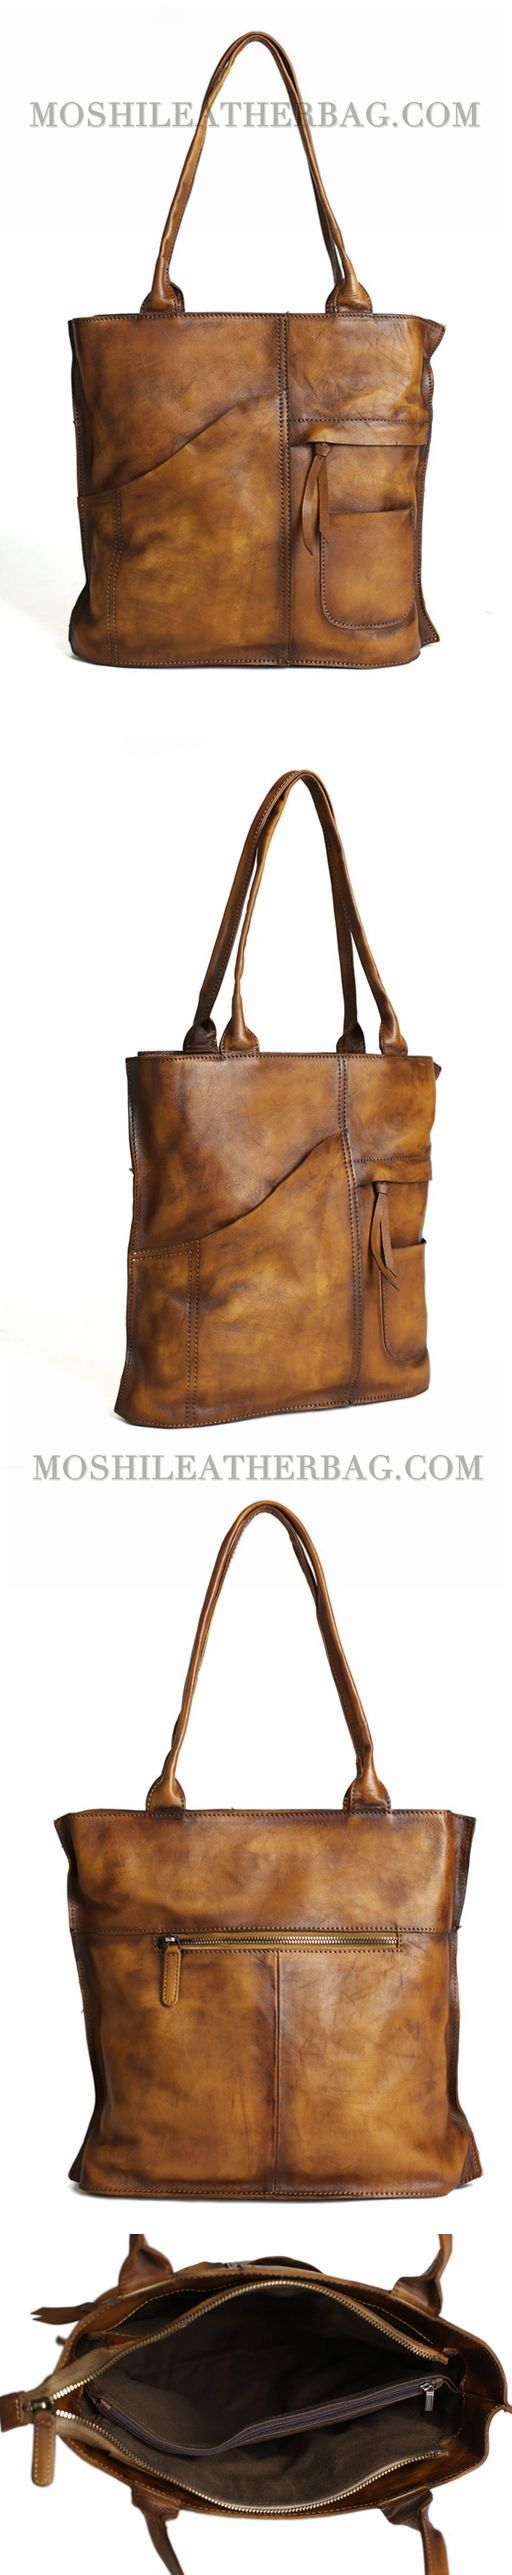 Vintage Brown Leather Tote Bag, Women's Designer Handbags DD103